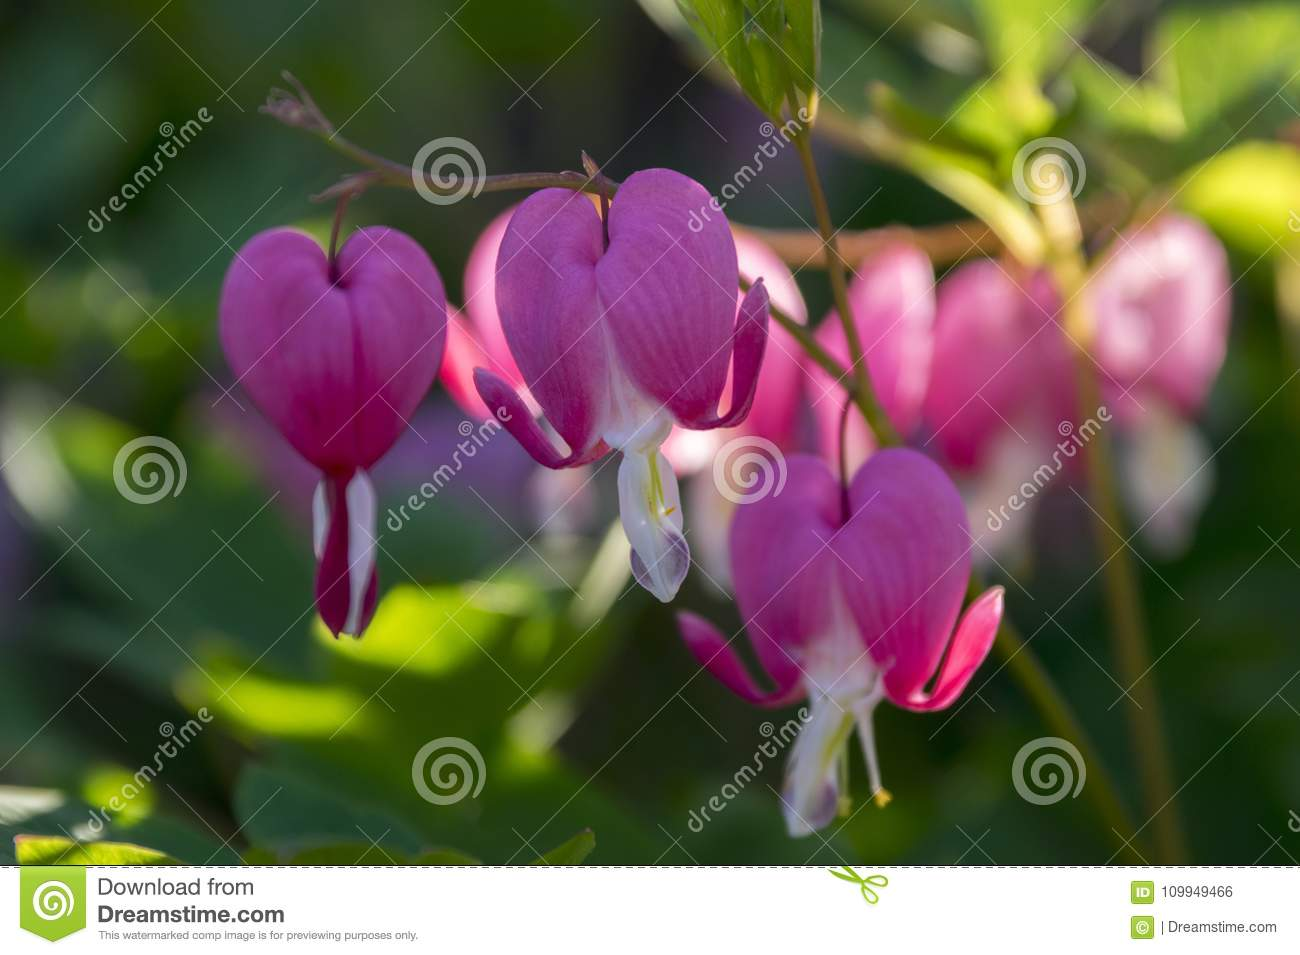 Dicentra spectabilis asian bleeding hearts heart shaped flowers dicentra spectabilis asian bleeding hearts heart shaped flowers springtime sunlight group of pink a and white flowers ornamental plant mightylinksfo